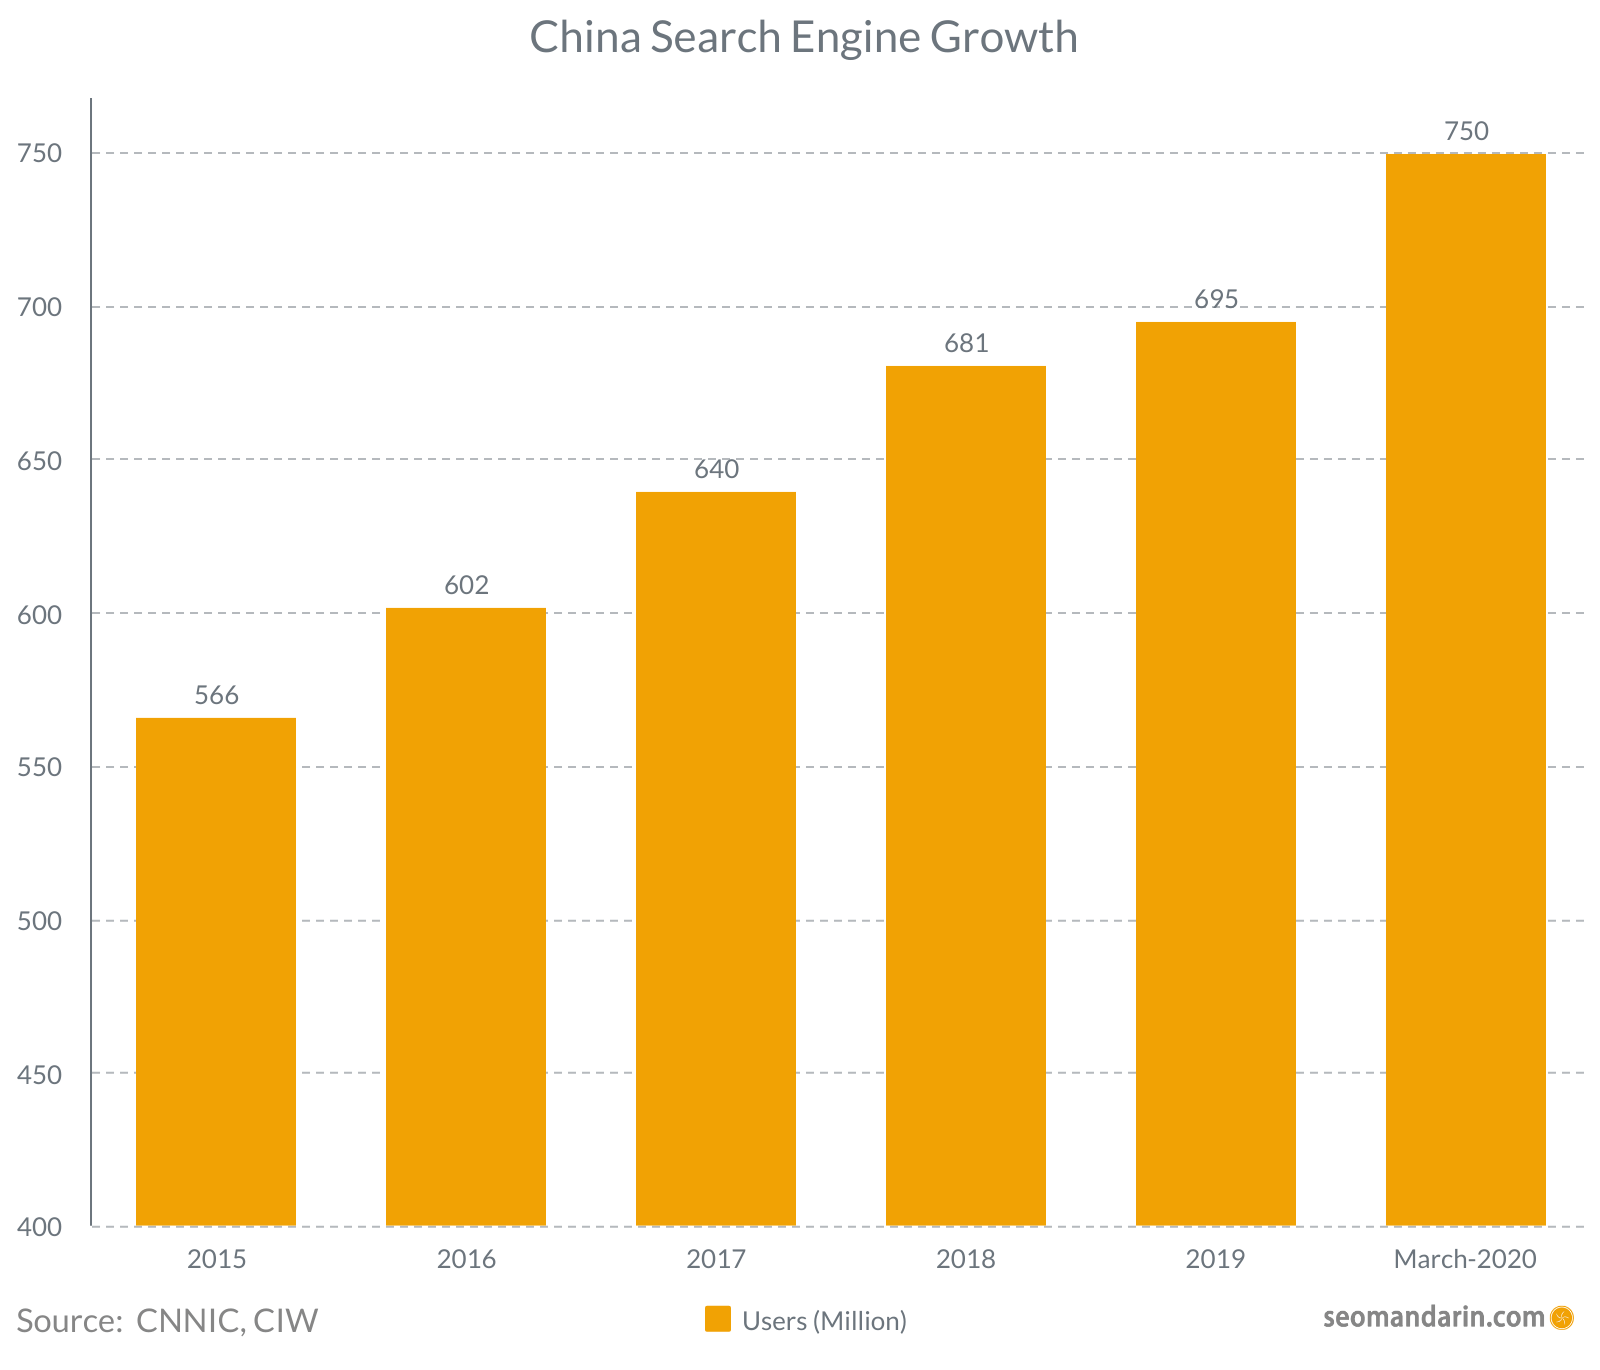 China search engine growth 2020